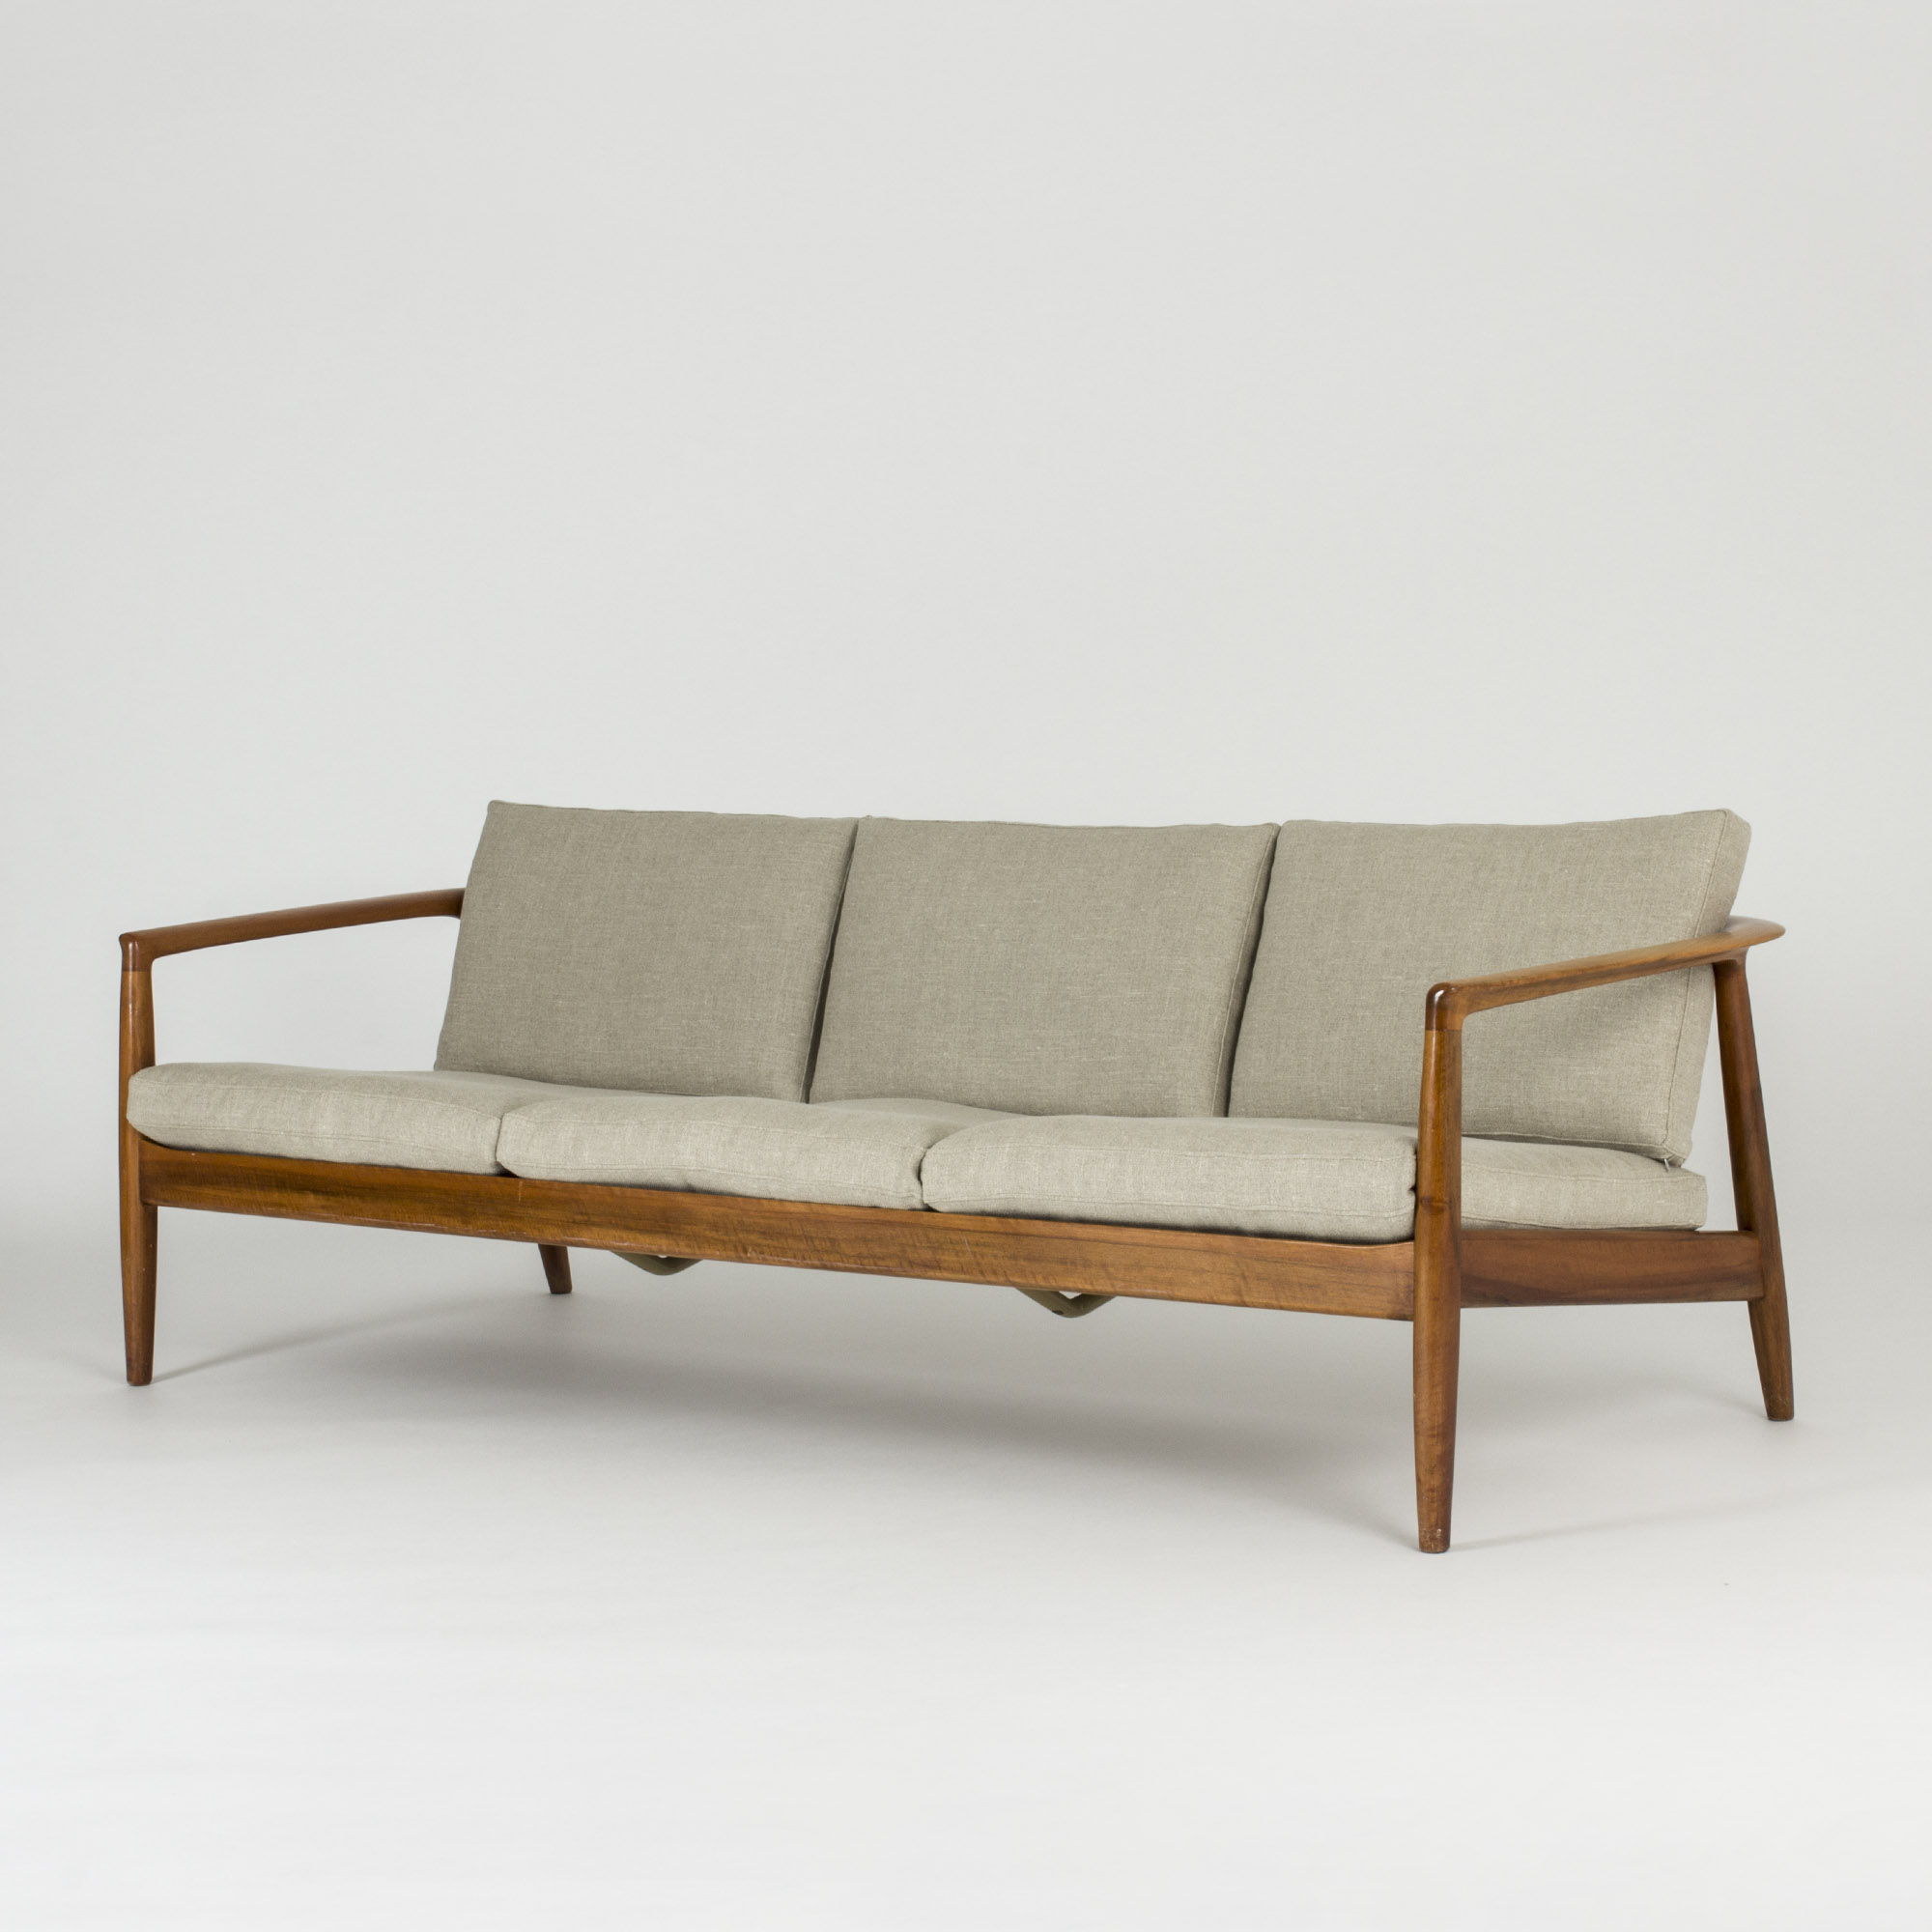 Walnut Sofa By Folke Ohlsson Beautiful Vintage Midcentury Modern Design